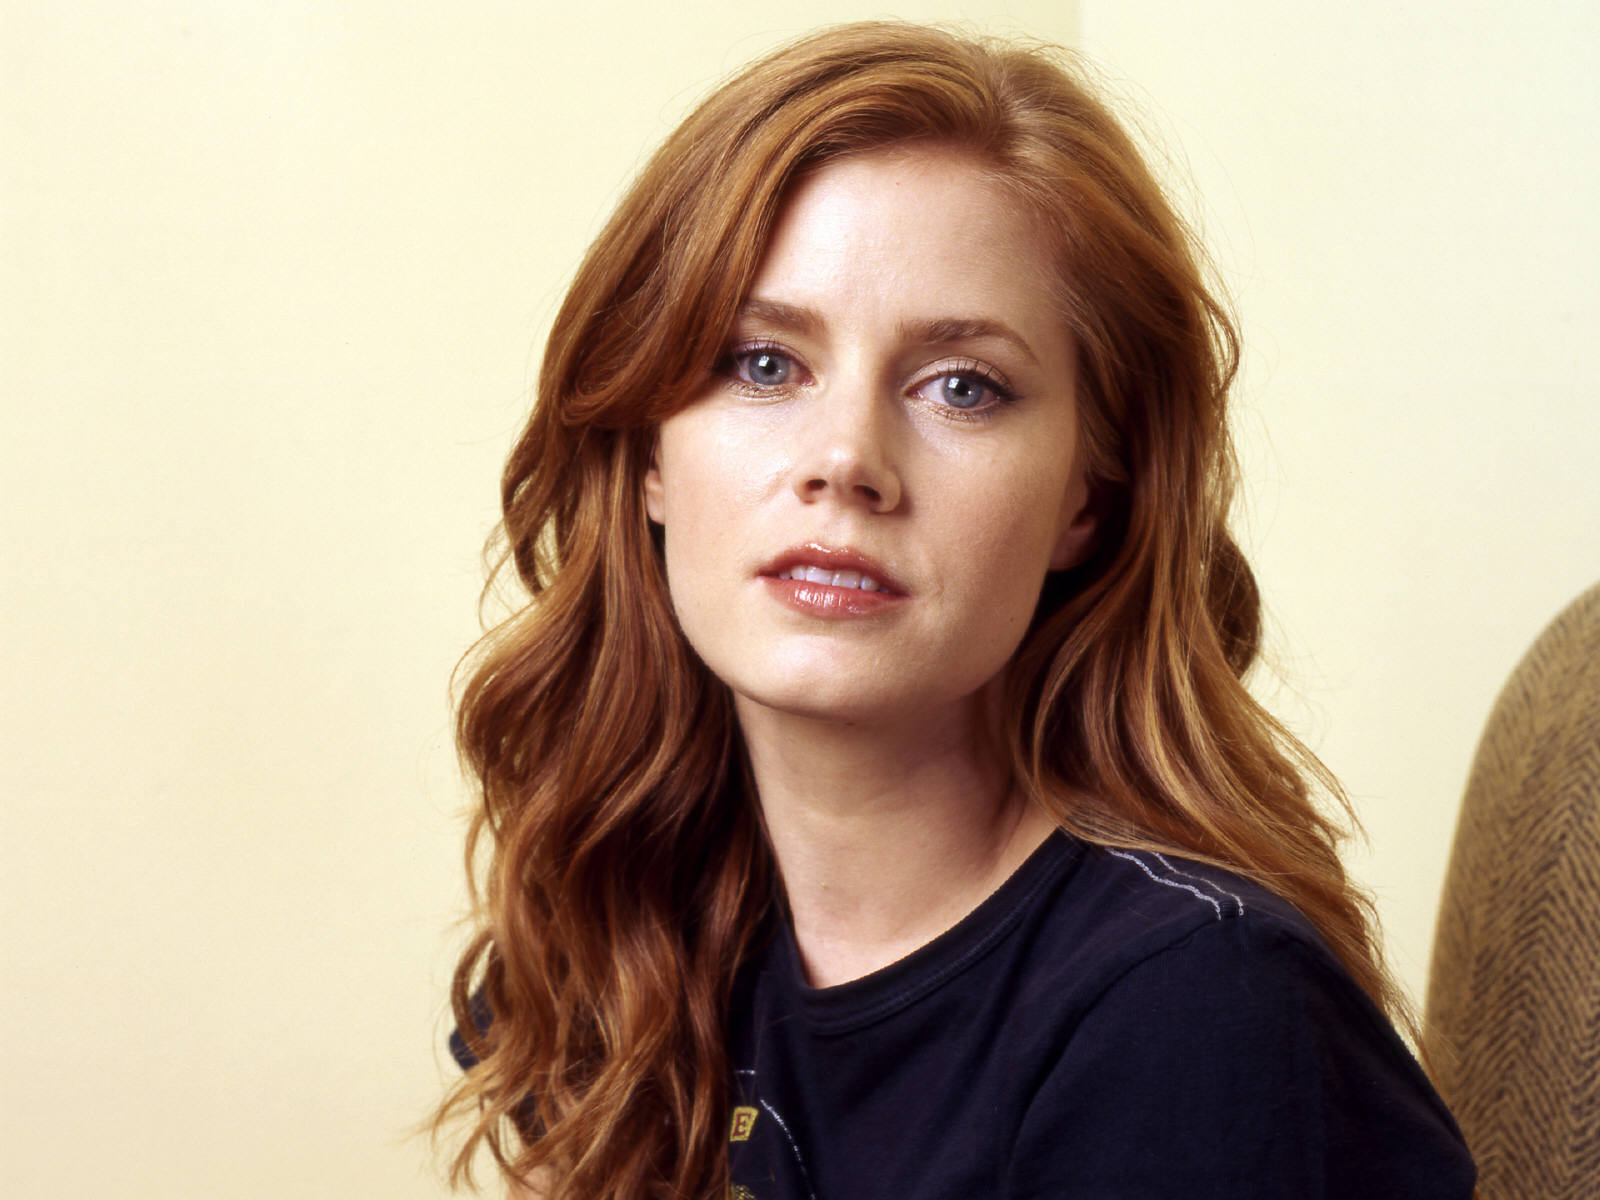 Amy-Adams-amy-adams-712650_1600_1200 dans Films series - News de tournage